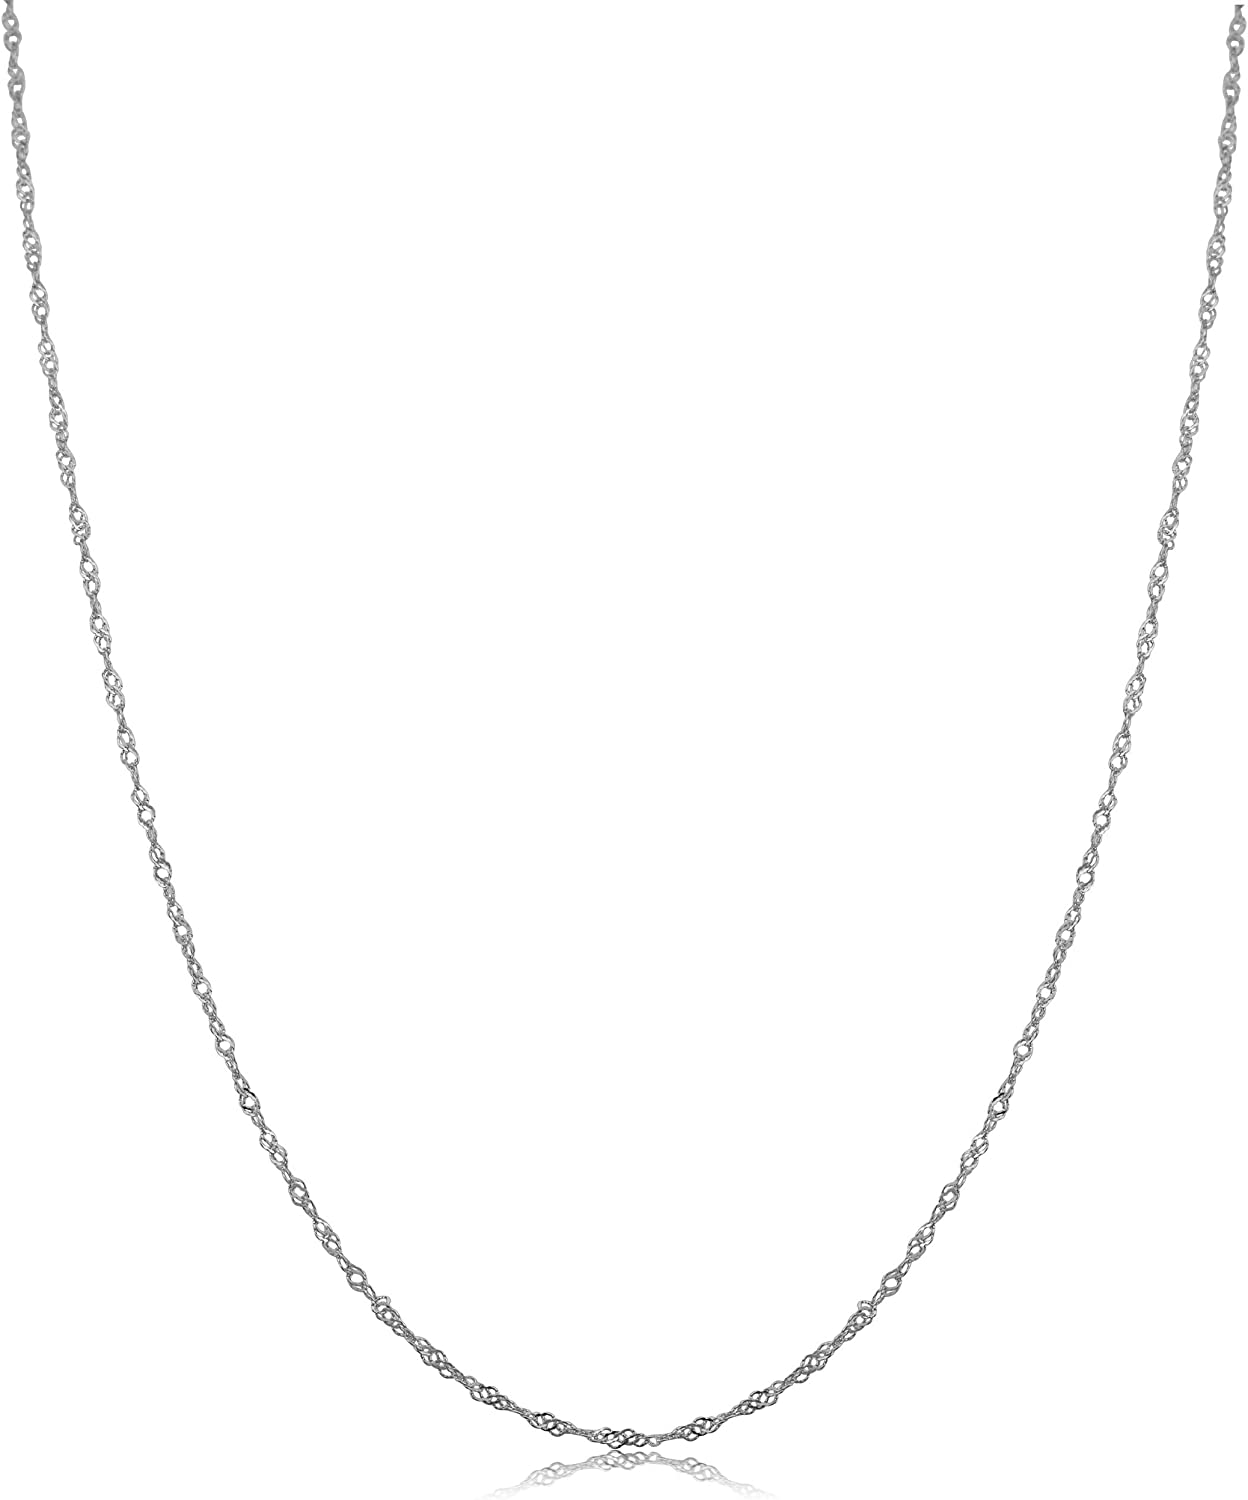 Kooljewelry 10k White Gold Singapore Chain Necklace (0.7 mm, 1 mm, 1.4 mm, 1.7 mm)